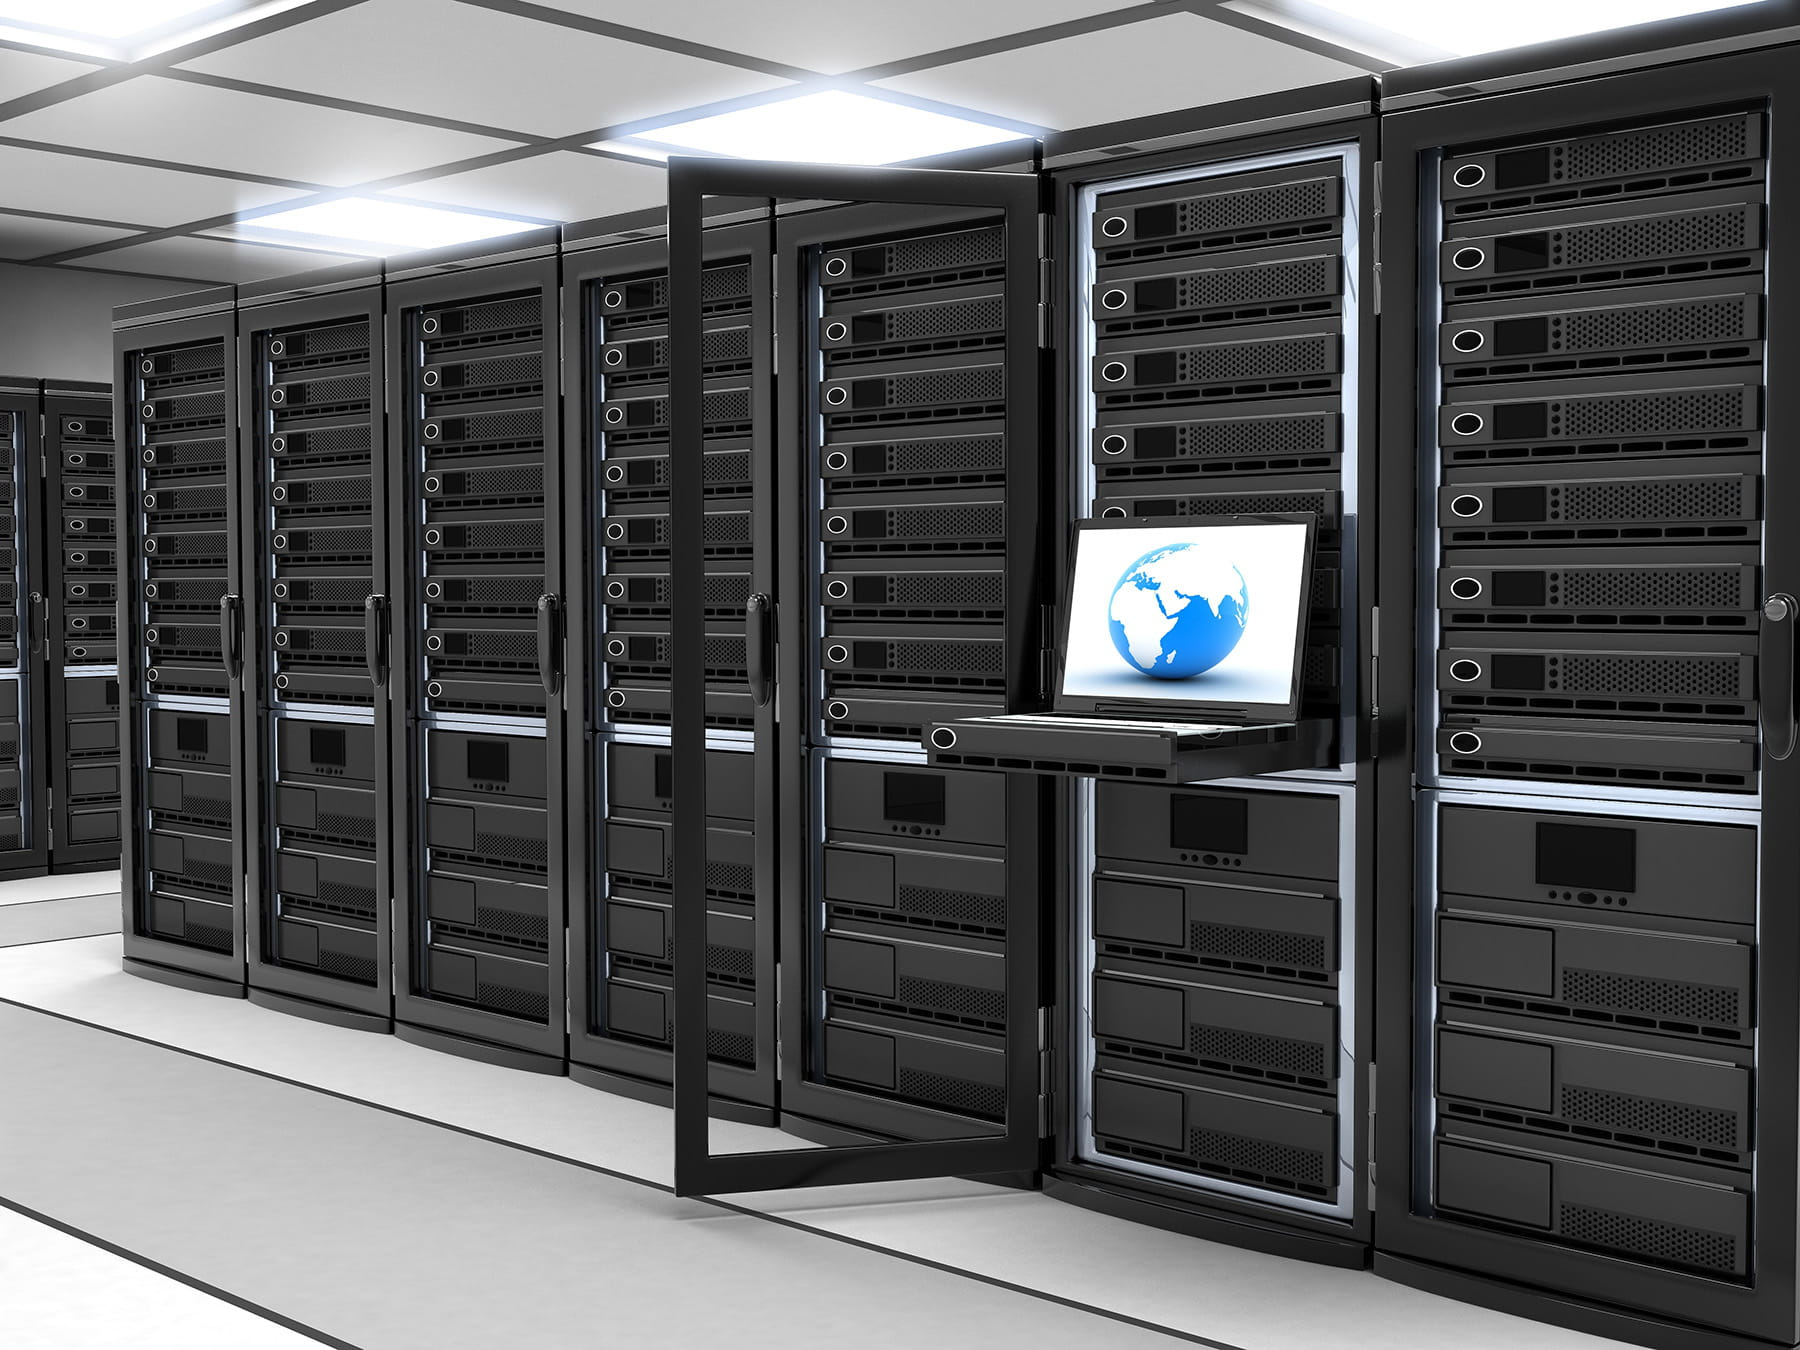 Data Storage System : Challenges and solutions with modern storage devices